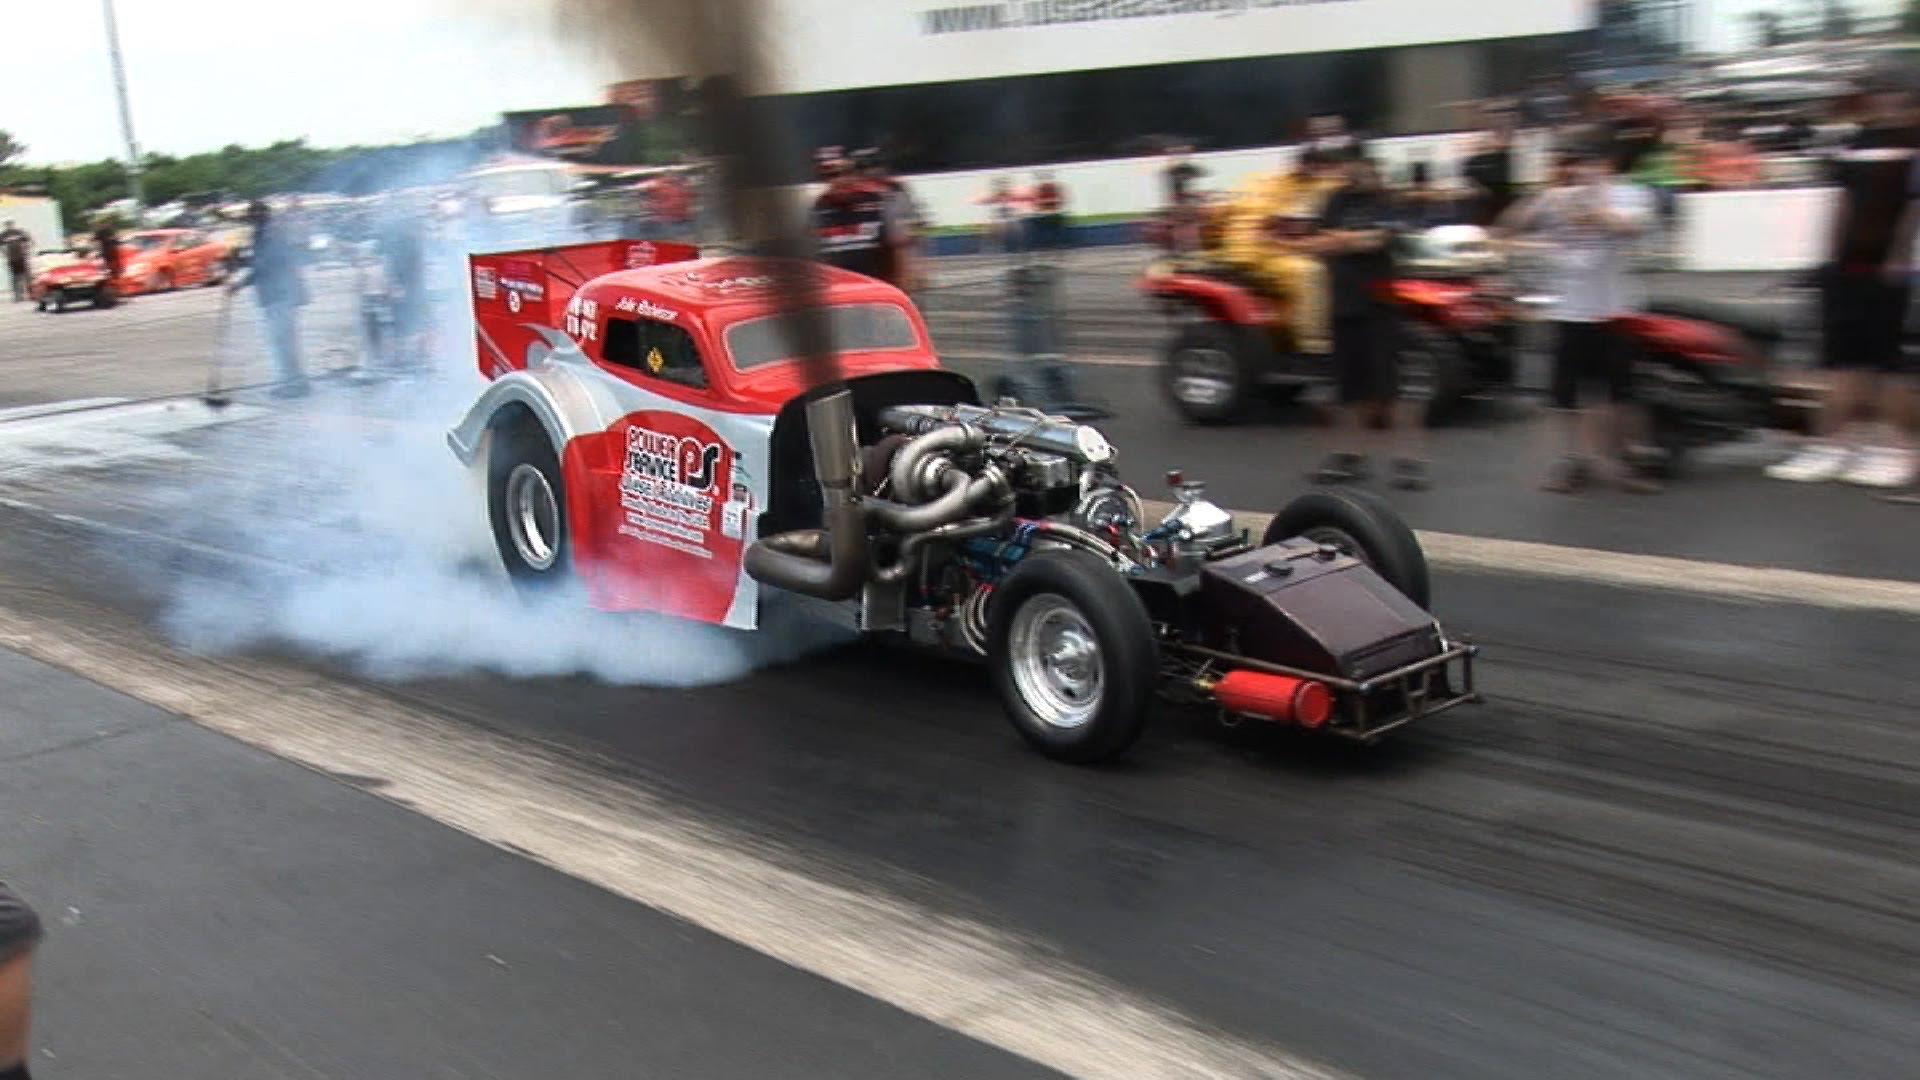 Check Out This Ridiculously Powerful Diesel Drag Car!